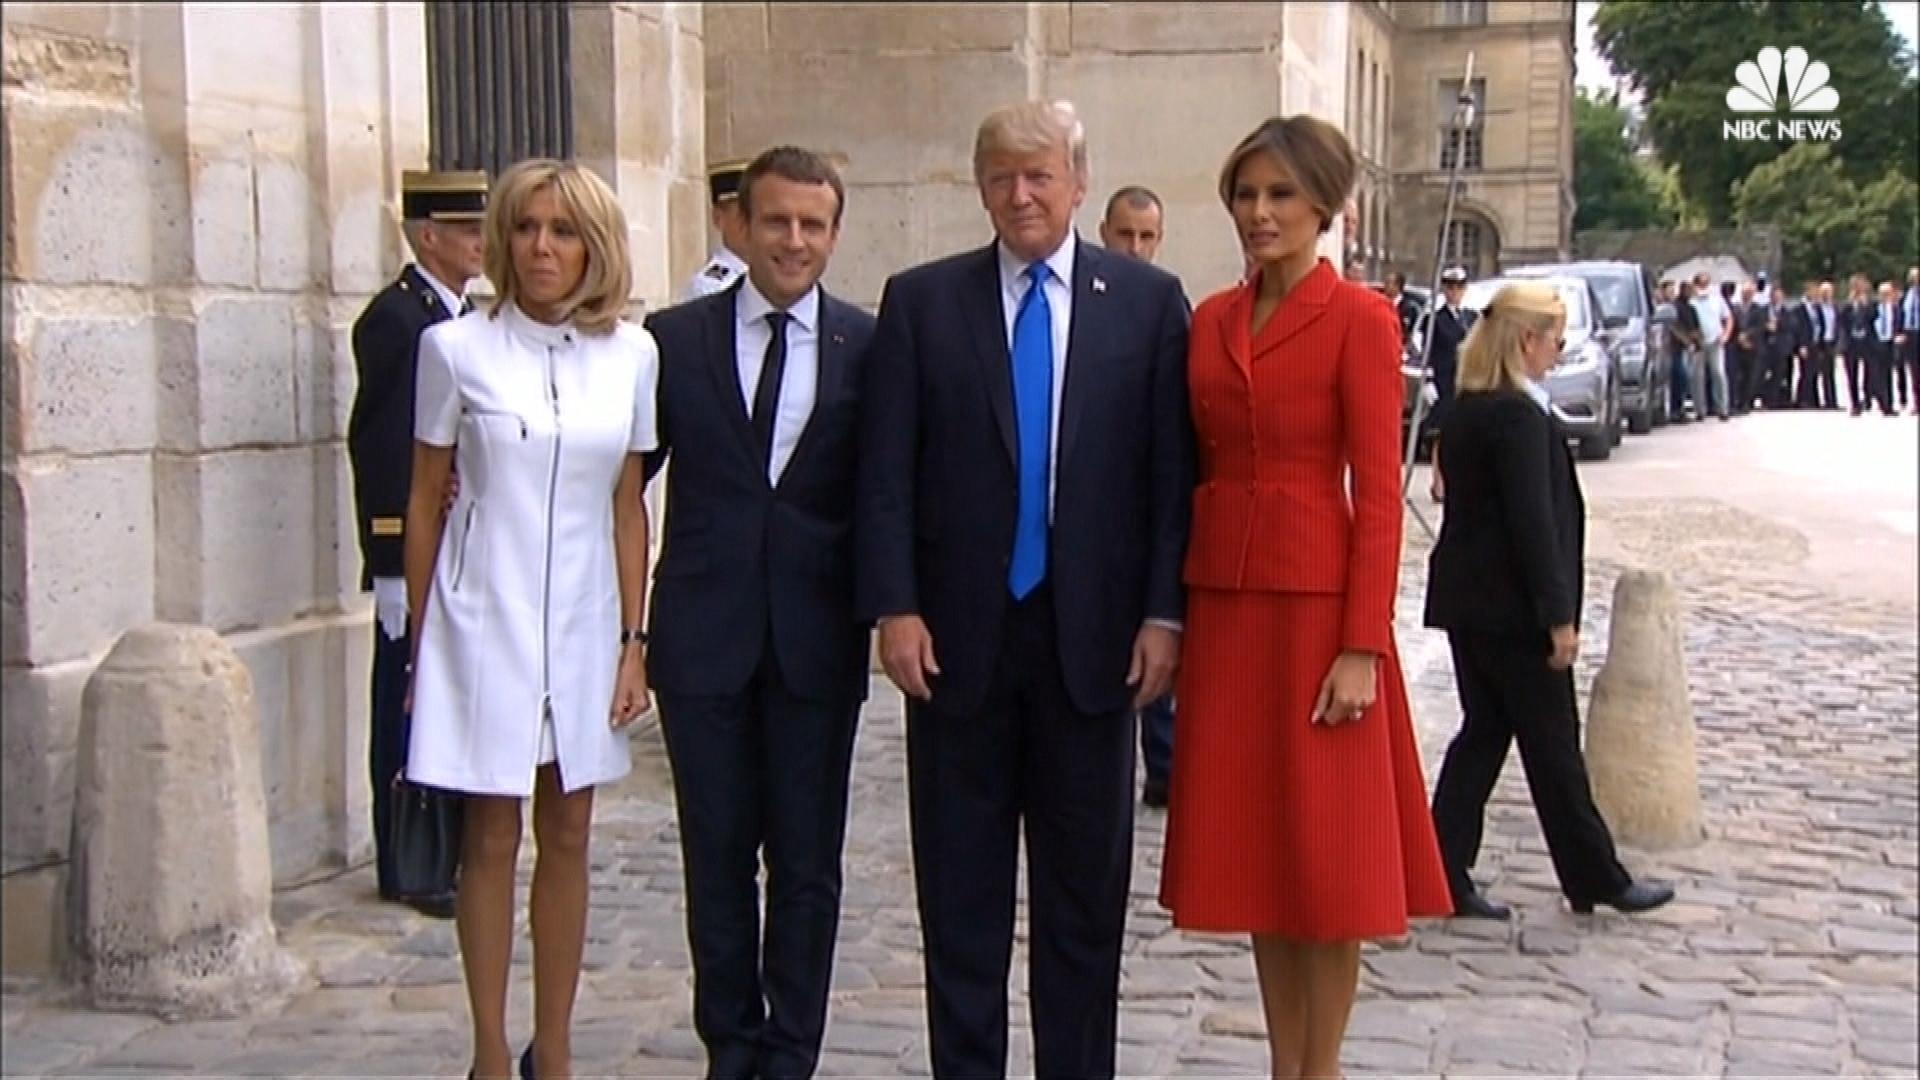 Trump, Macron Attend Welcome Ceremony Events in Paris ...